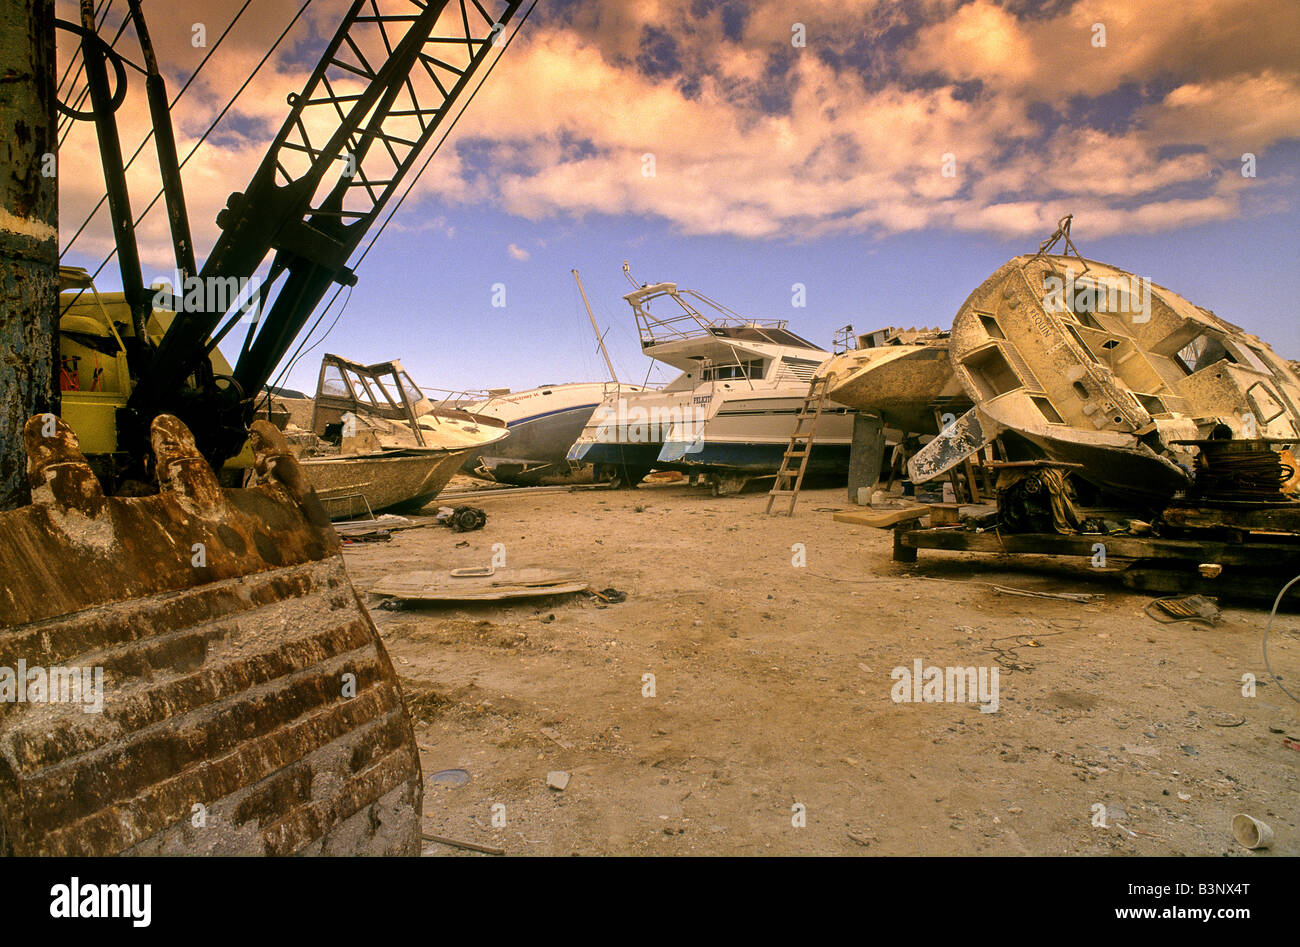 Shipwrecks on a shipyard after a hurricane in the Caribbean - Stock Image